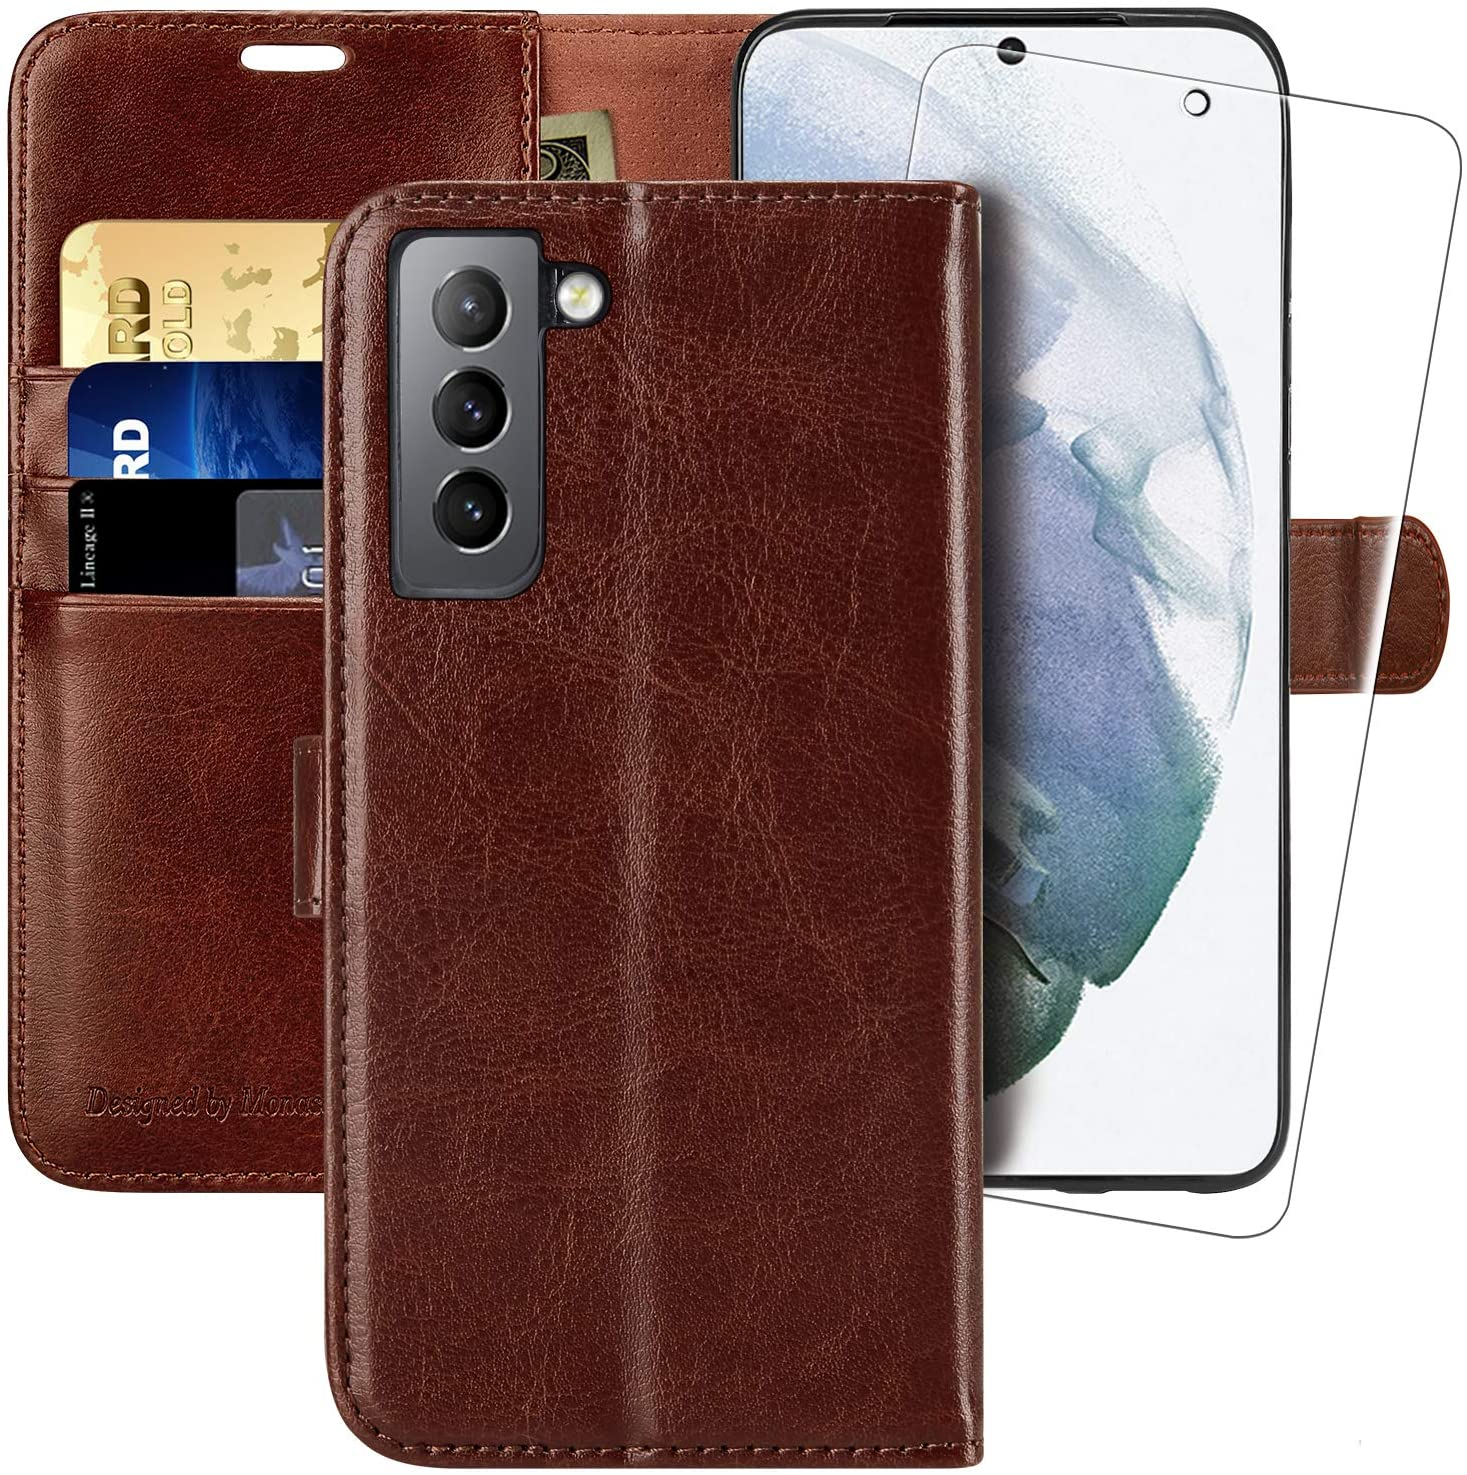 Galaxy S21 5G Wallet Case,6.2 inch,MONASAY [Included Screen Protector] Flip Folio Leather Cell Phone Cover with Credit Card Holder for Samsung Galaxy S21 5G